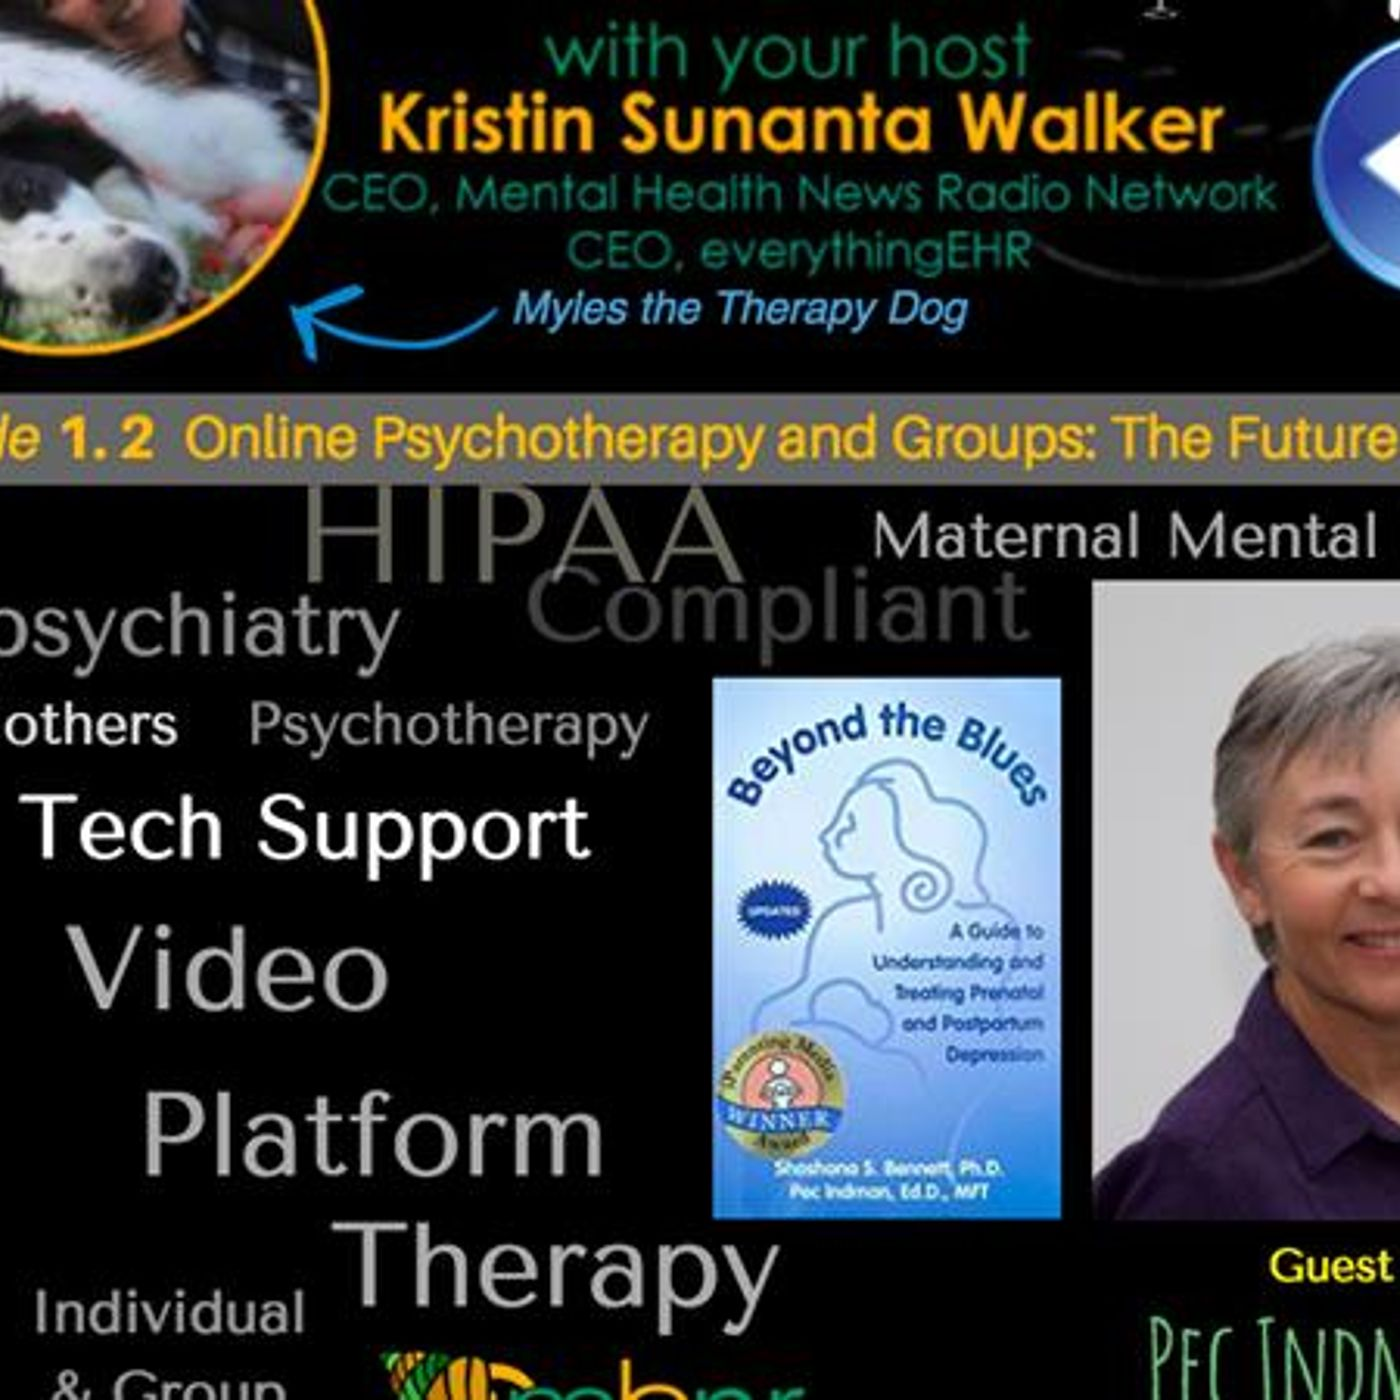 Mental Health News Radio - Online Psychotherapy and Groups: Telemental Health with Dr. Pec Indman 1.2